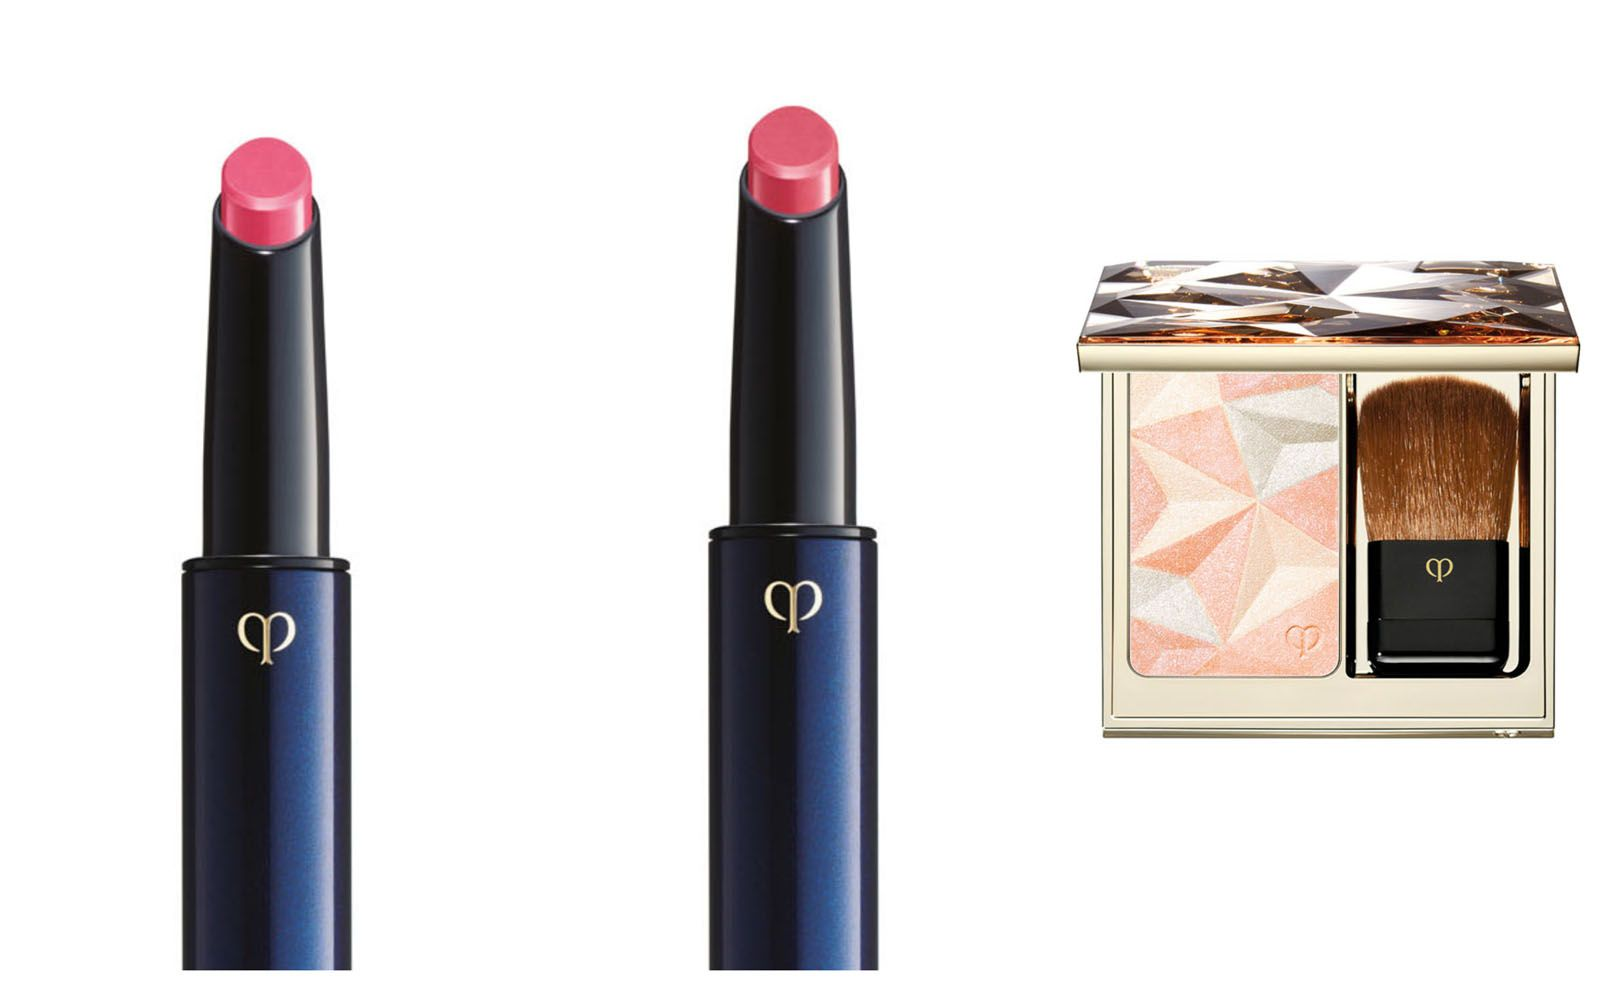 Clé de Peau Beauté Refined Lip Luminizer in Sweet Satin (left) and Rose Dragée; and the Luminizing Face Enhancer in shade 18